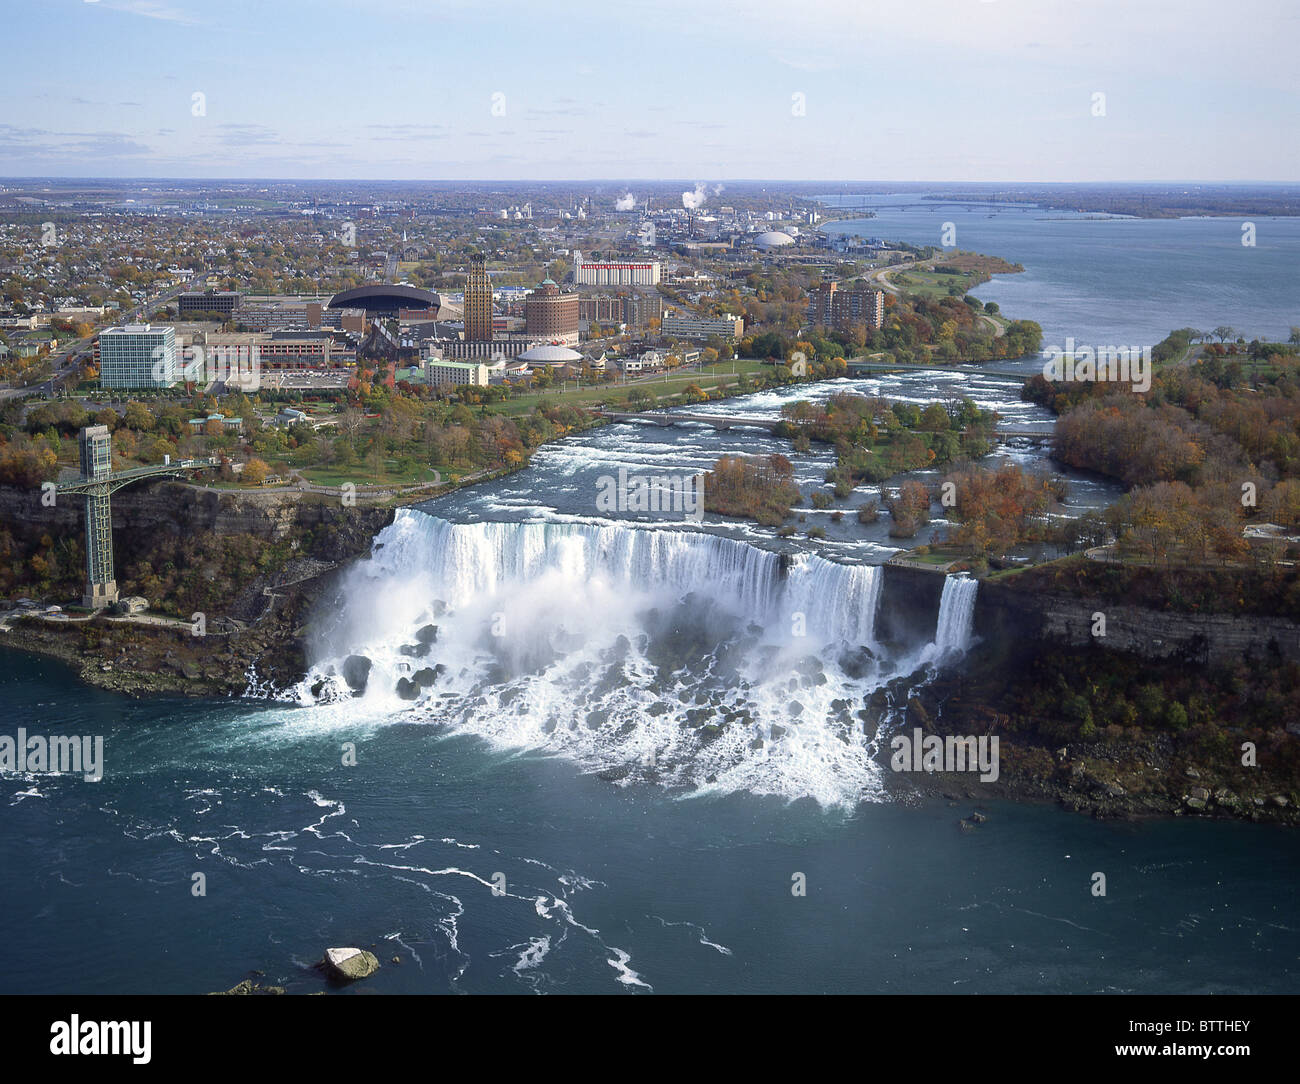 American And Bridal Veil Falls Niagara Falls New York State